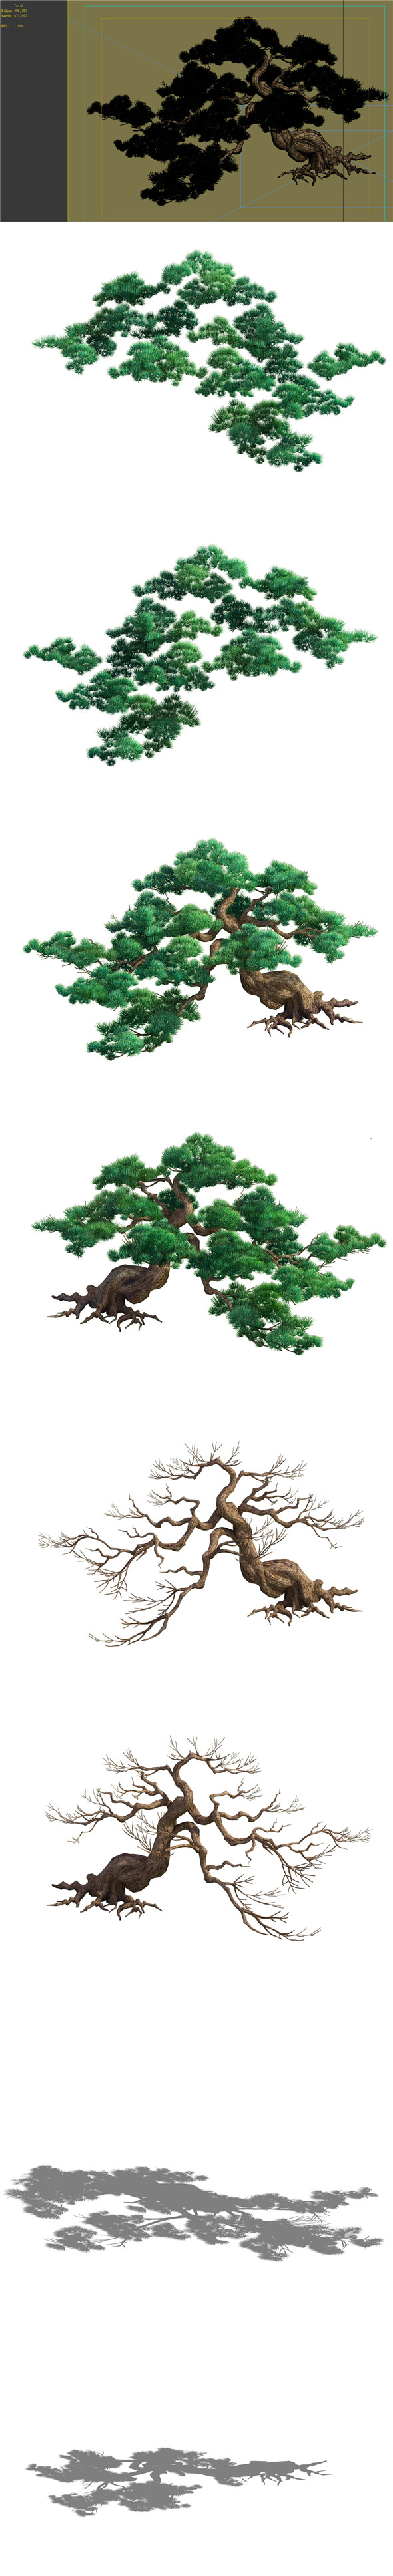 Game Model - Taoist comprehension scene - Pine 02 01 - 3DOcean Item for Sale